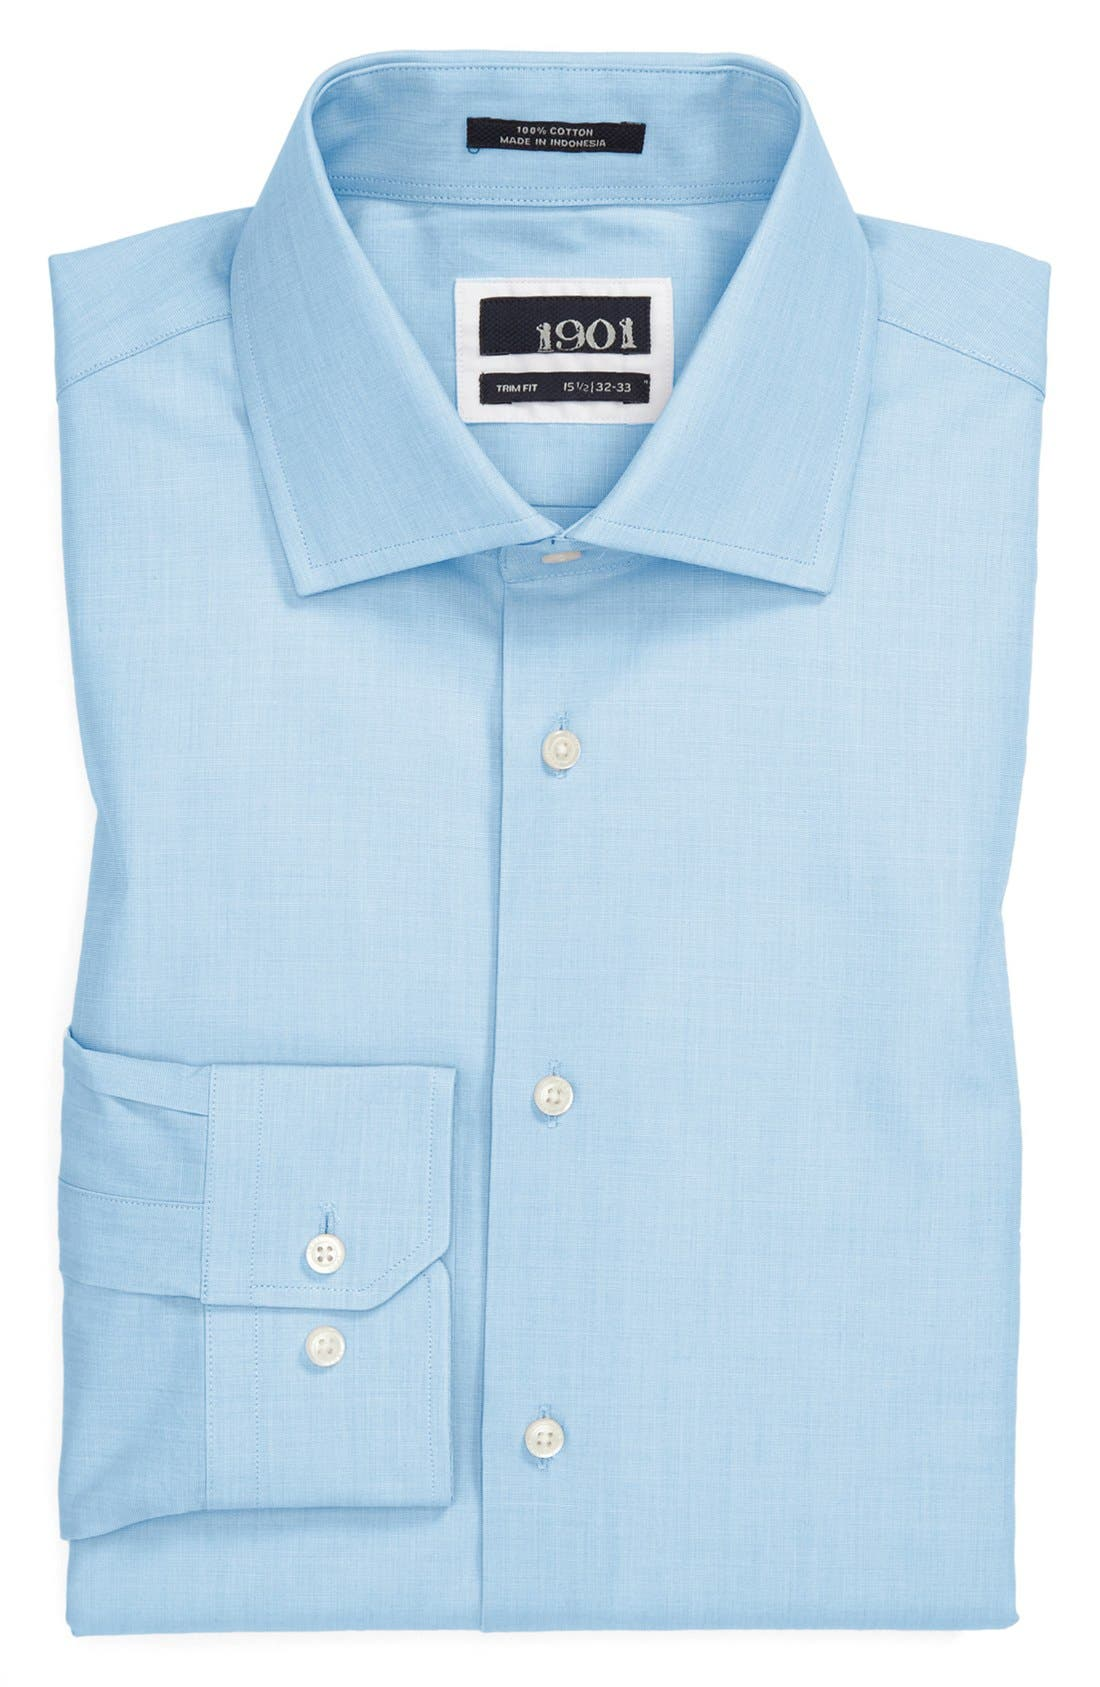 Main Image - 1901 Solid End-on-End Cotton Trim Fit Dress Shirt